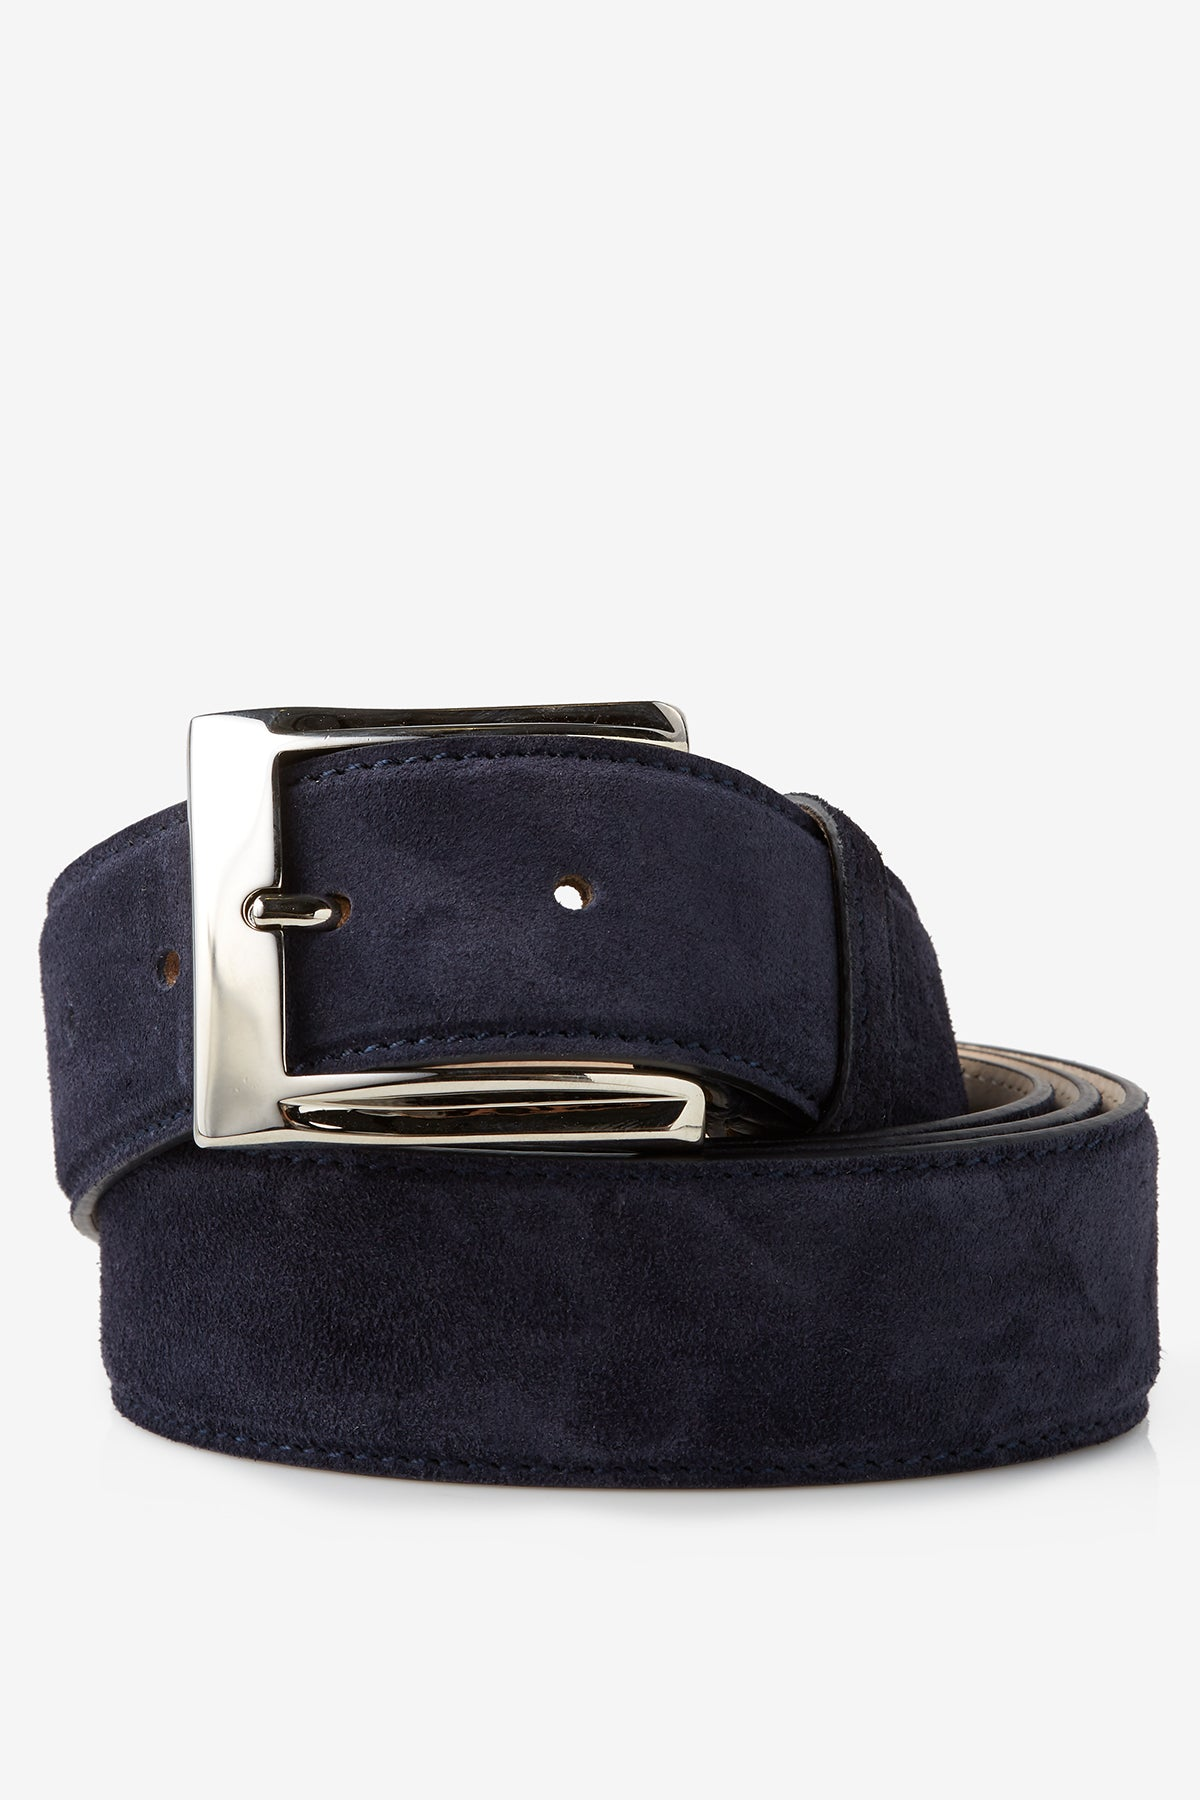 David August Genuine Velour Belt in Cosmos Blue Di Bianco